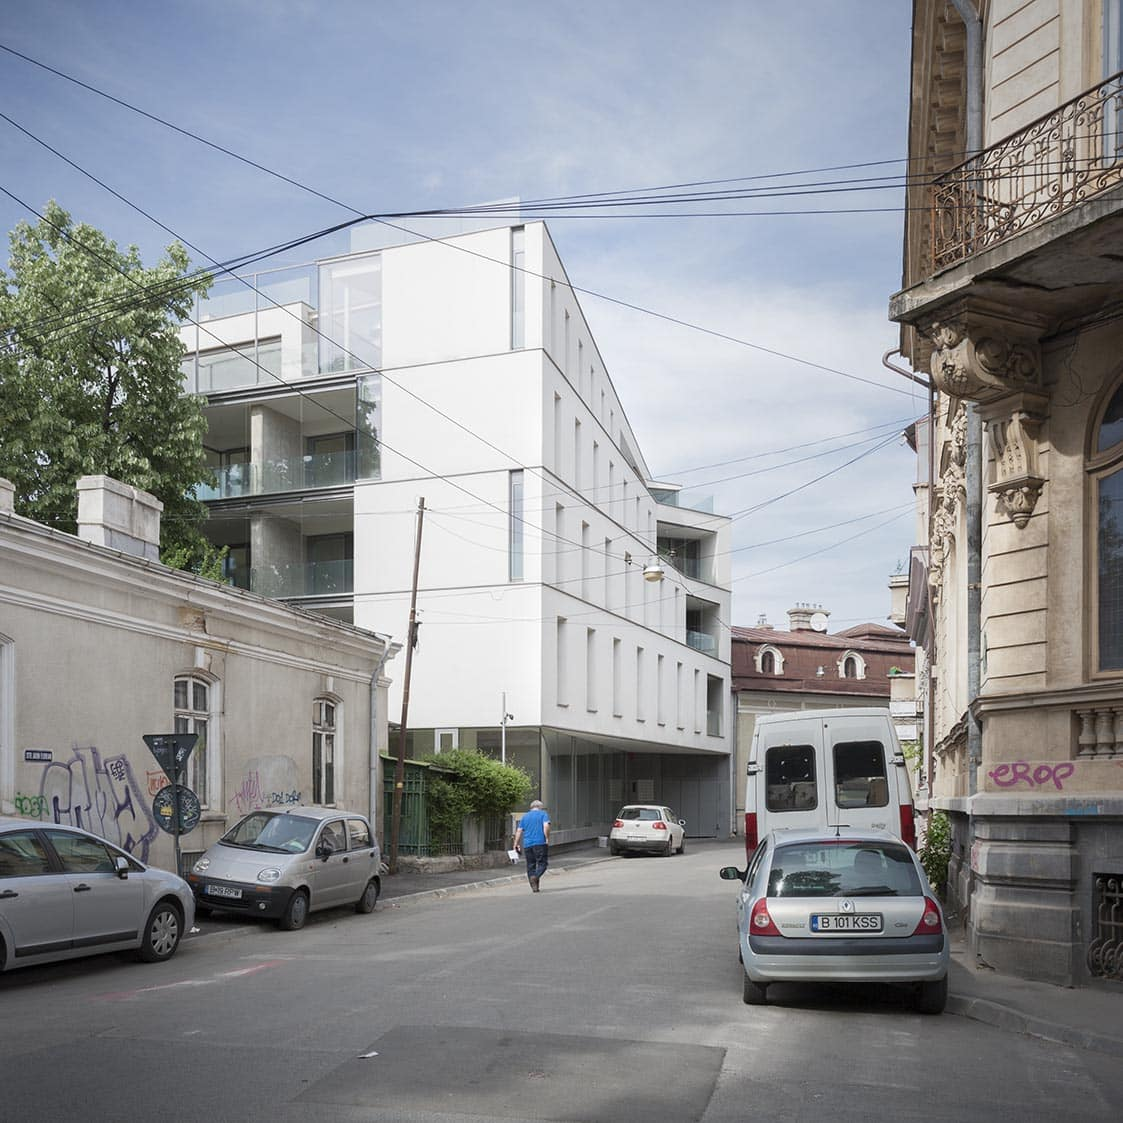 Aaron florian residential building view from i. L. Caragiale street foto © andrei margescu